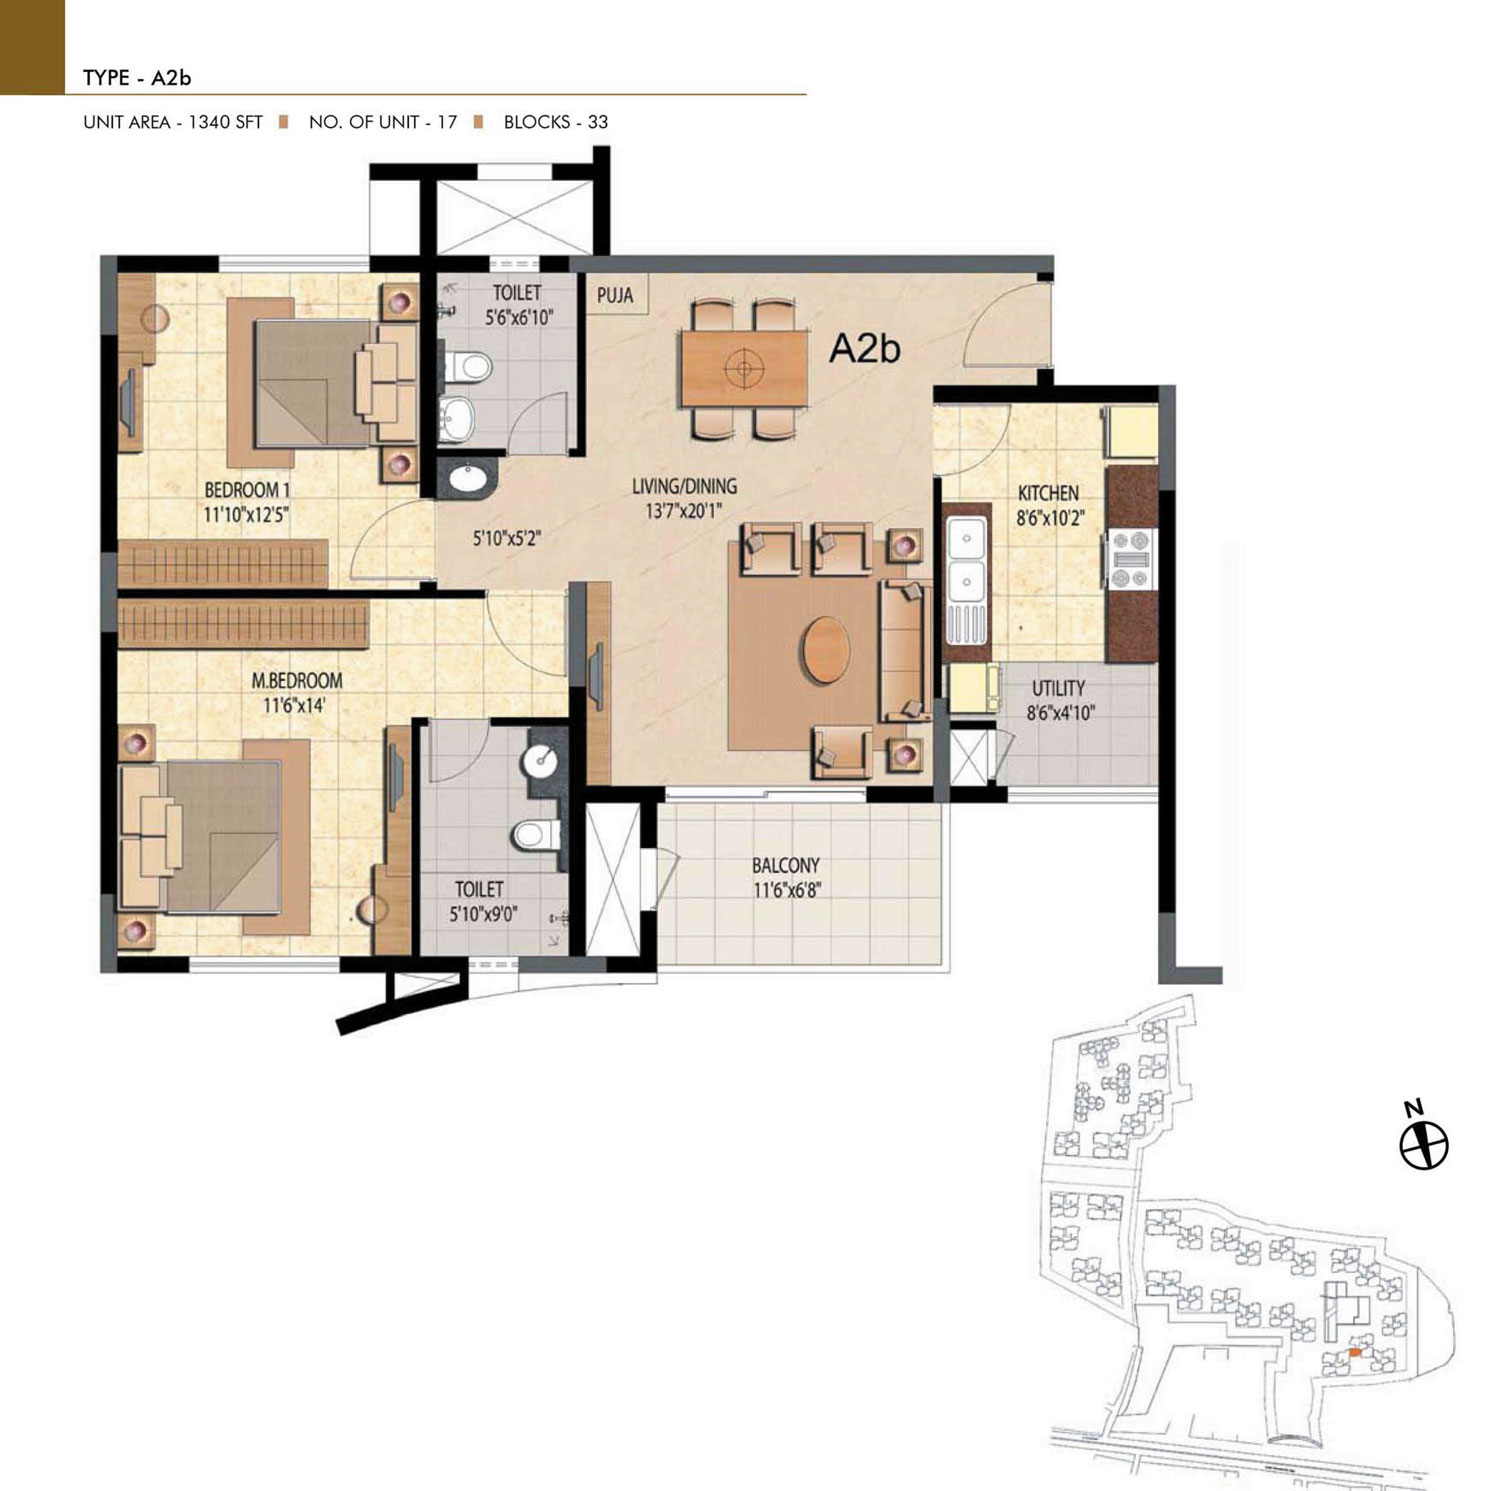 Type A2B - 2 Bed - 1340 Sq Ft